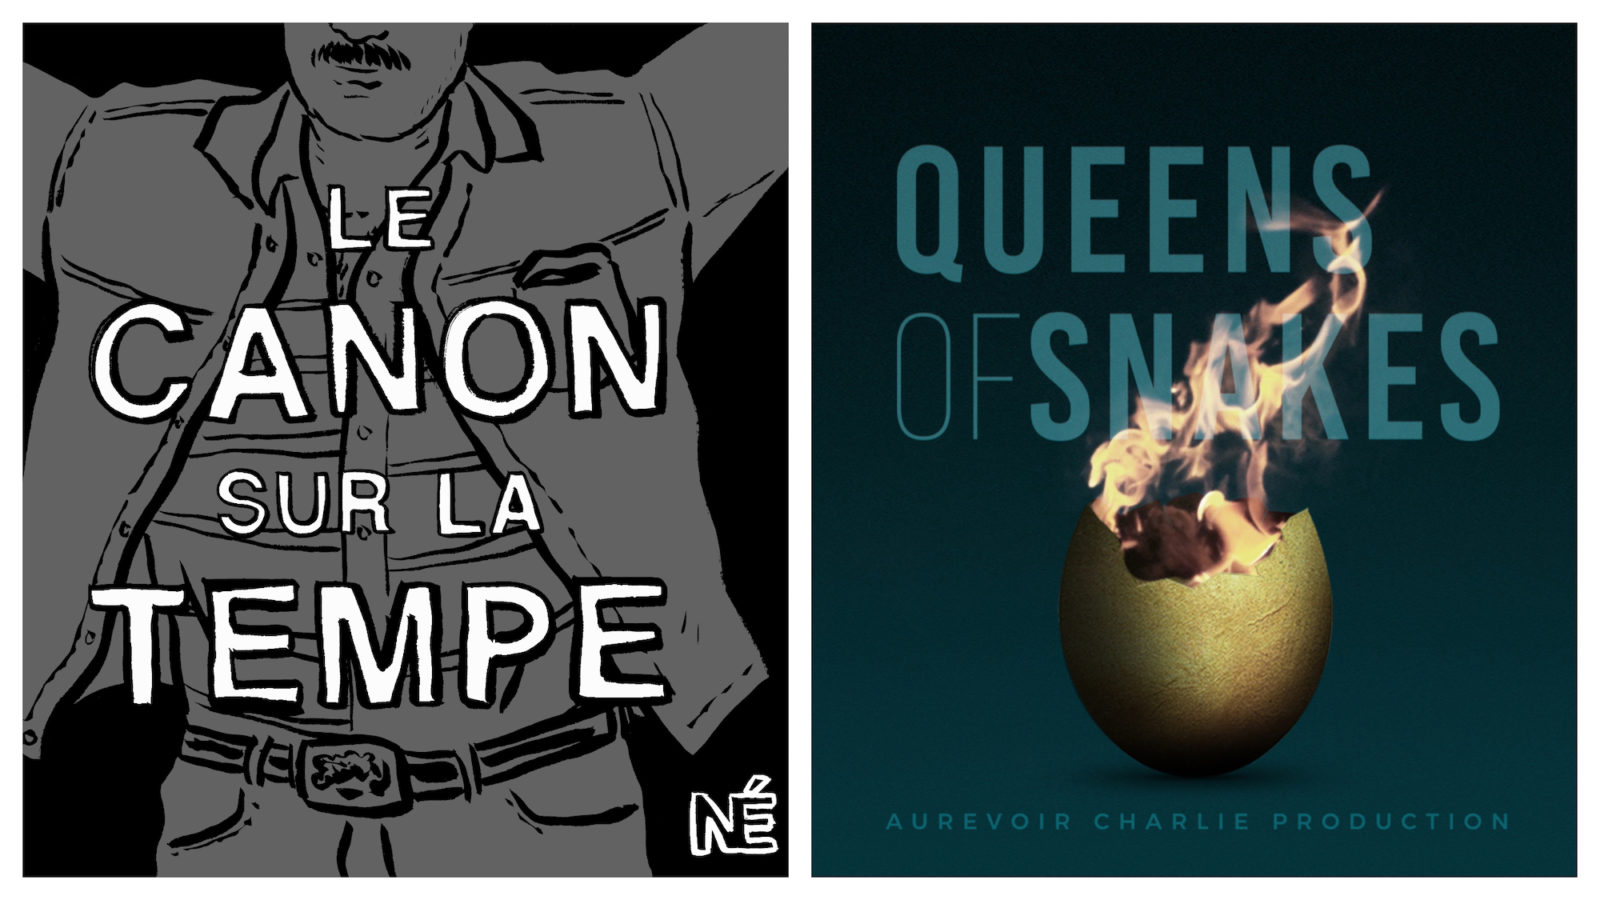 HiP Paris blog's favorite winter podcasts include Le Canon sur la Tempe about murders (left) and Queens of Snakes, an adventure story with actor Joey Starr (right).